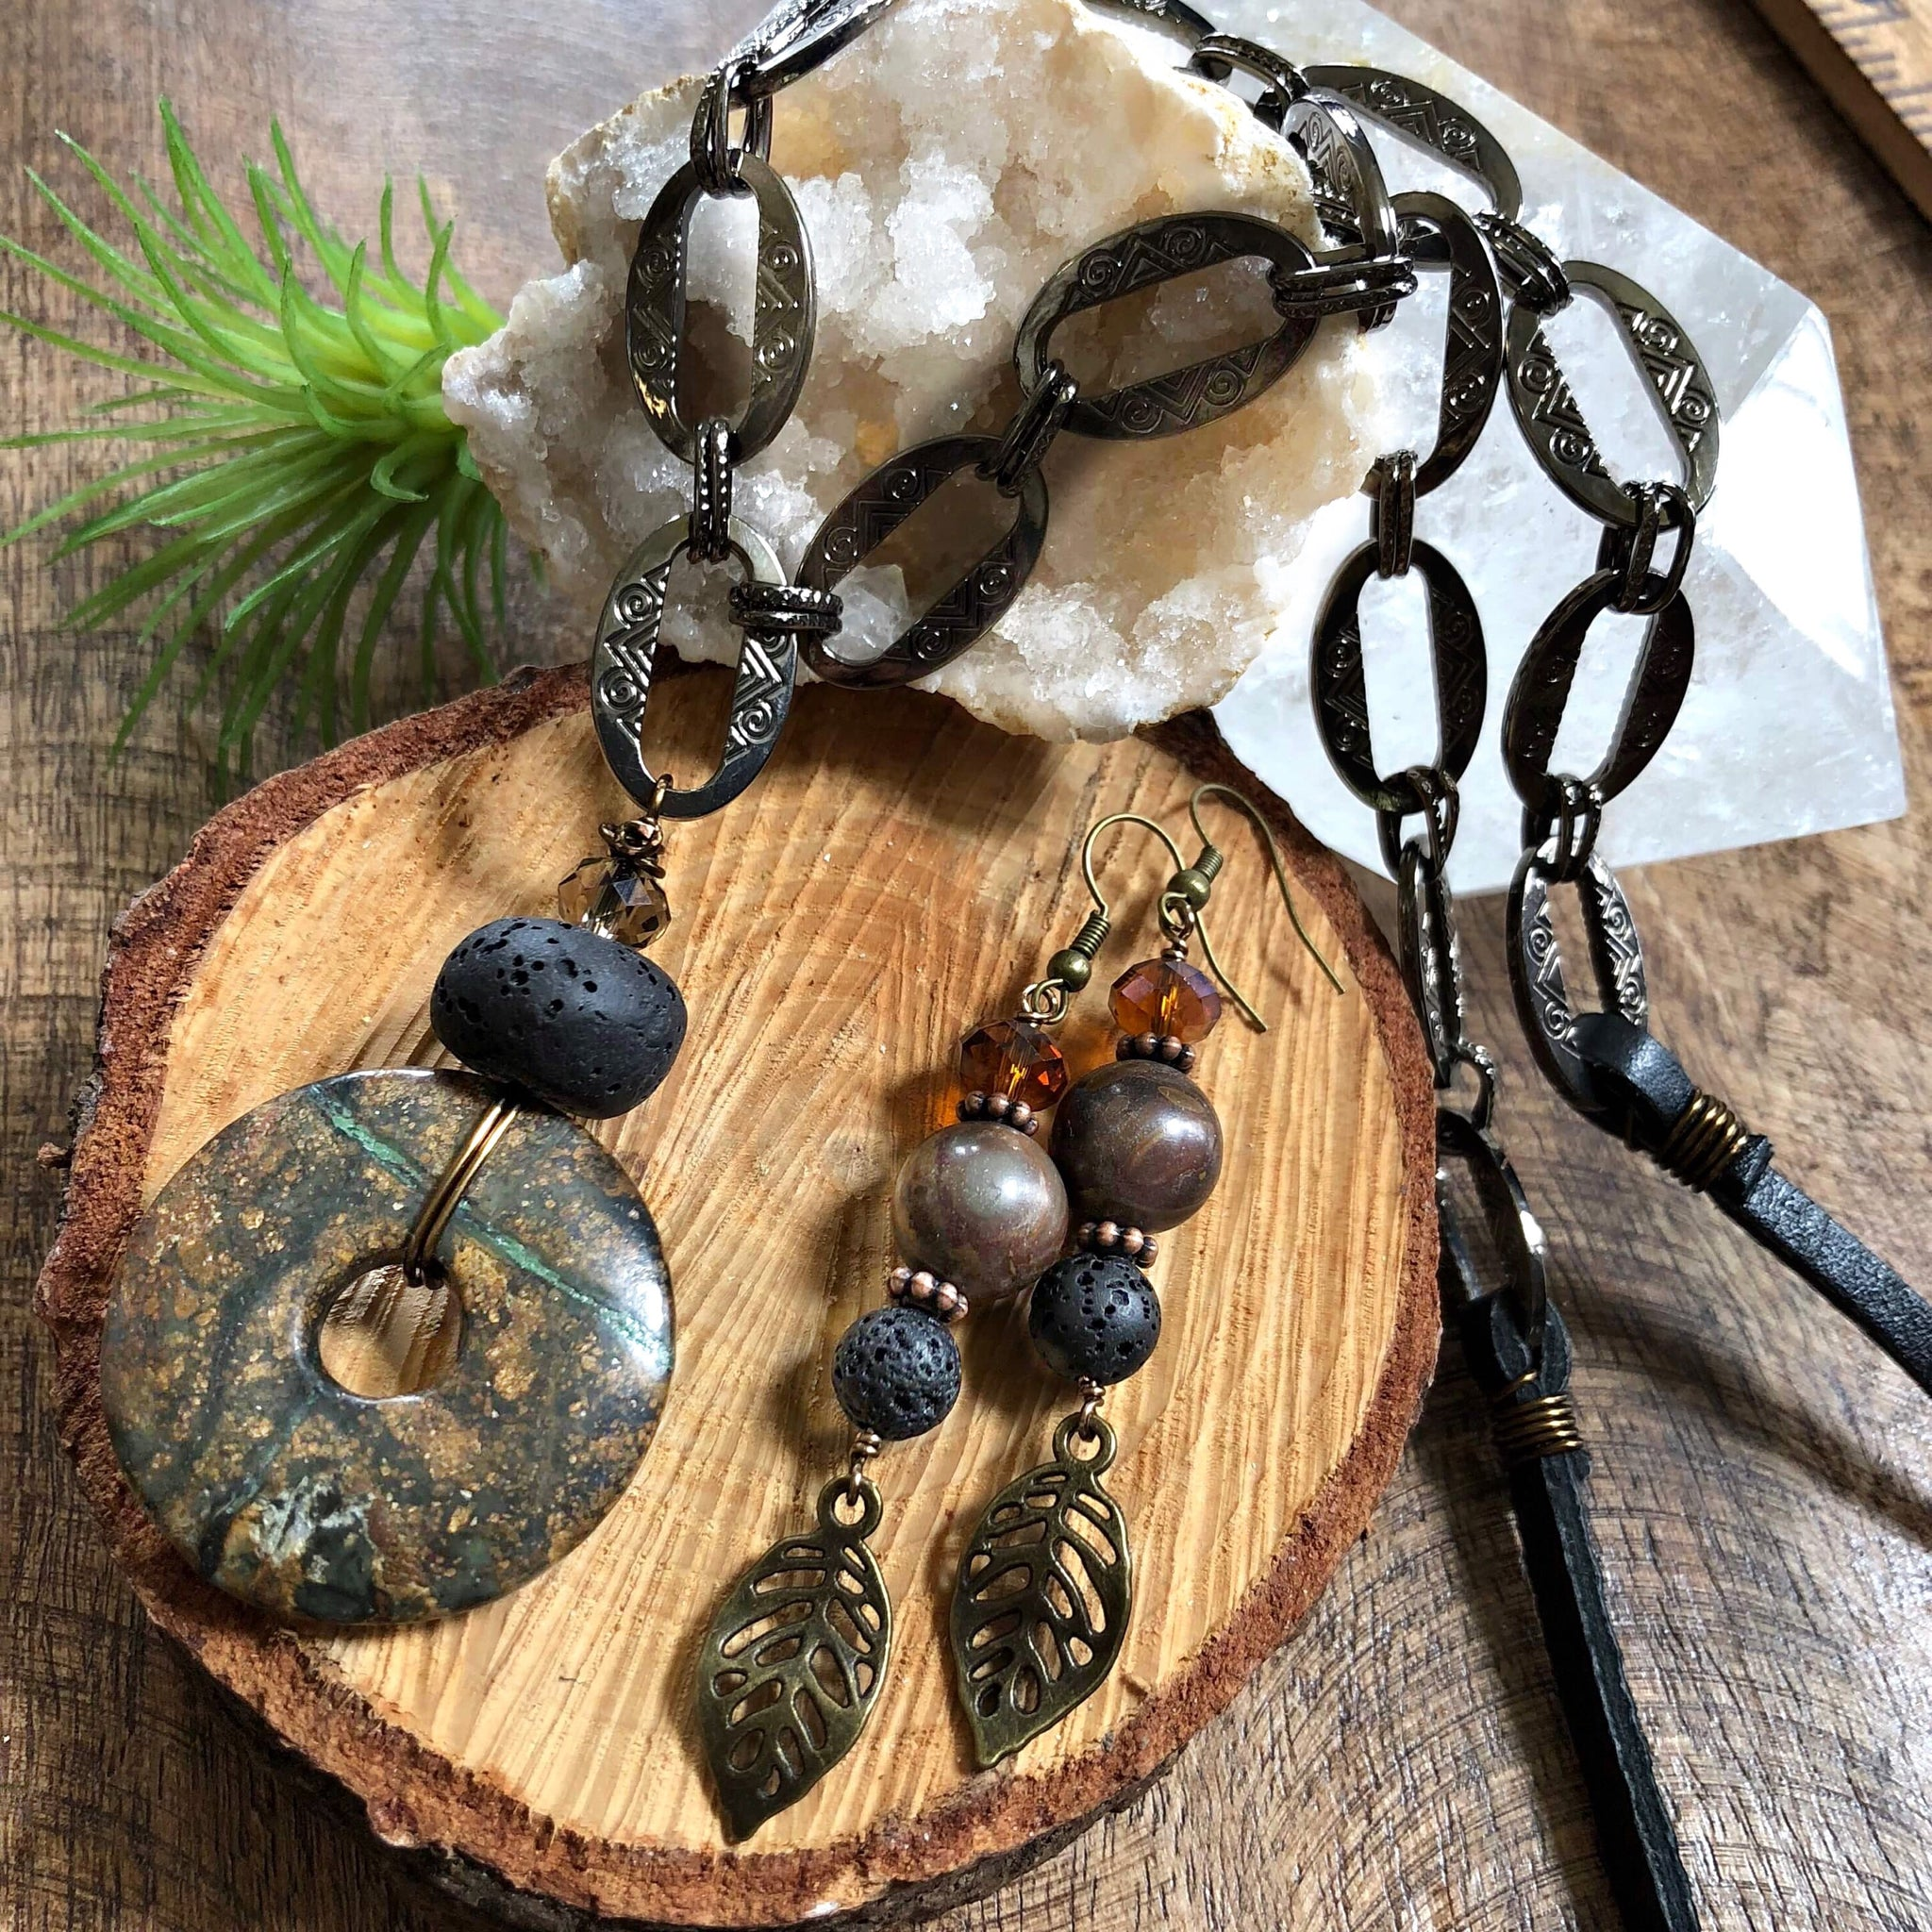 Essential oil diffuser necklace/earring set - Jasper